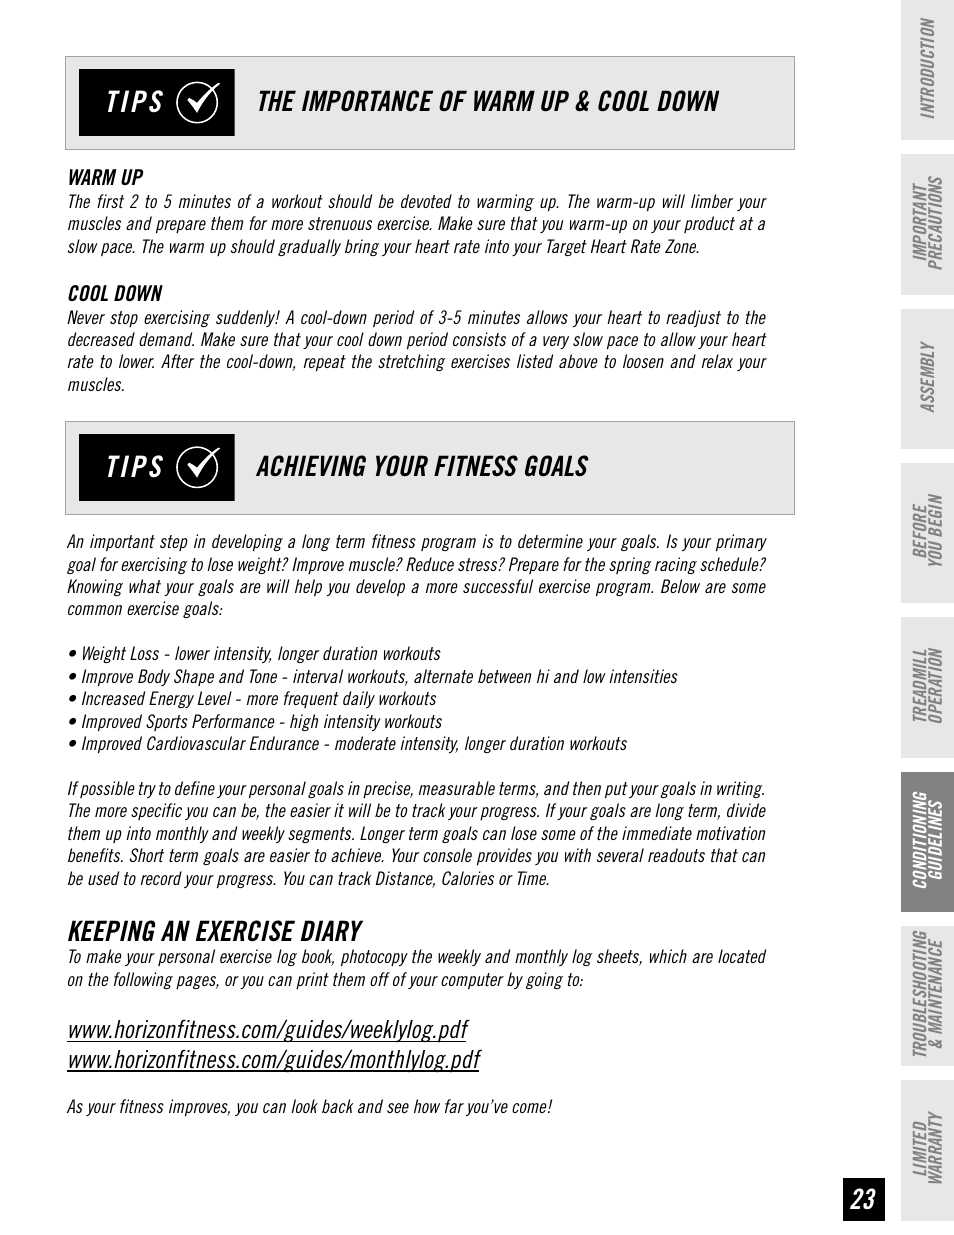 Tips Keeping An Exercise Diary Horizon Fitness T95 User Manual